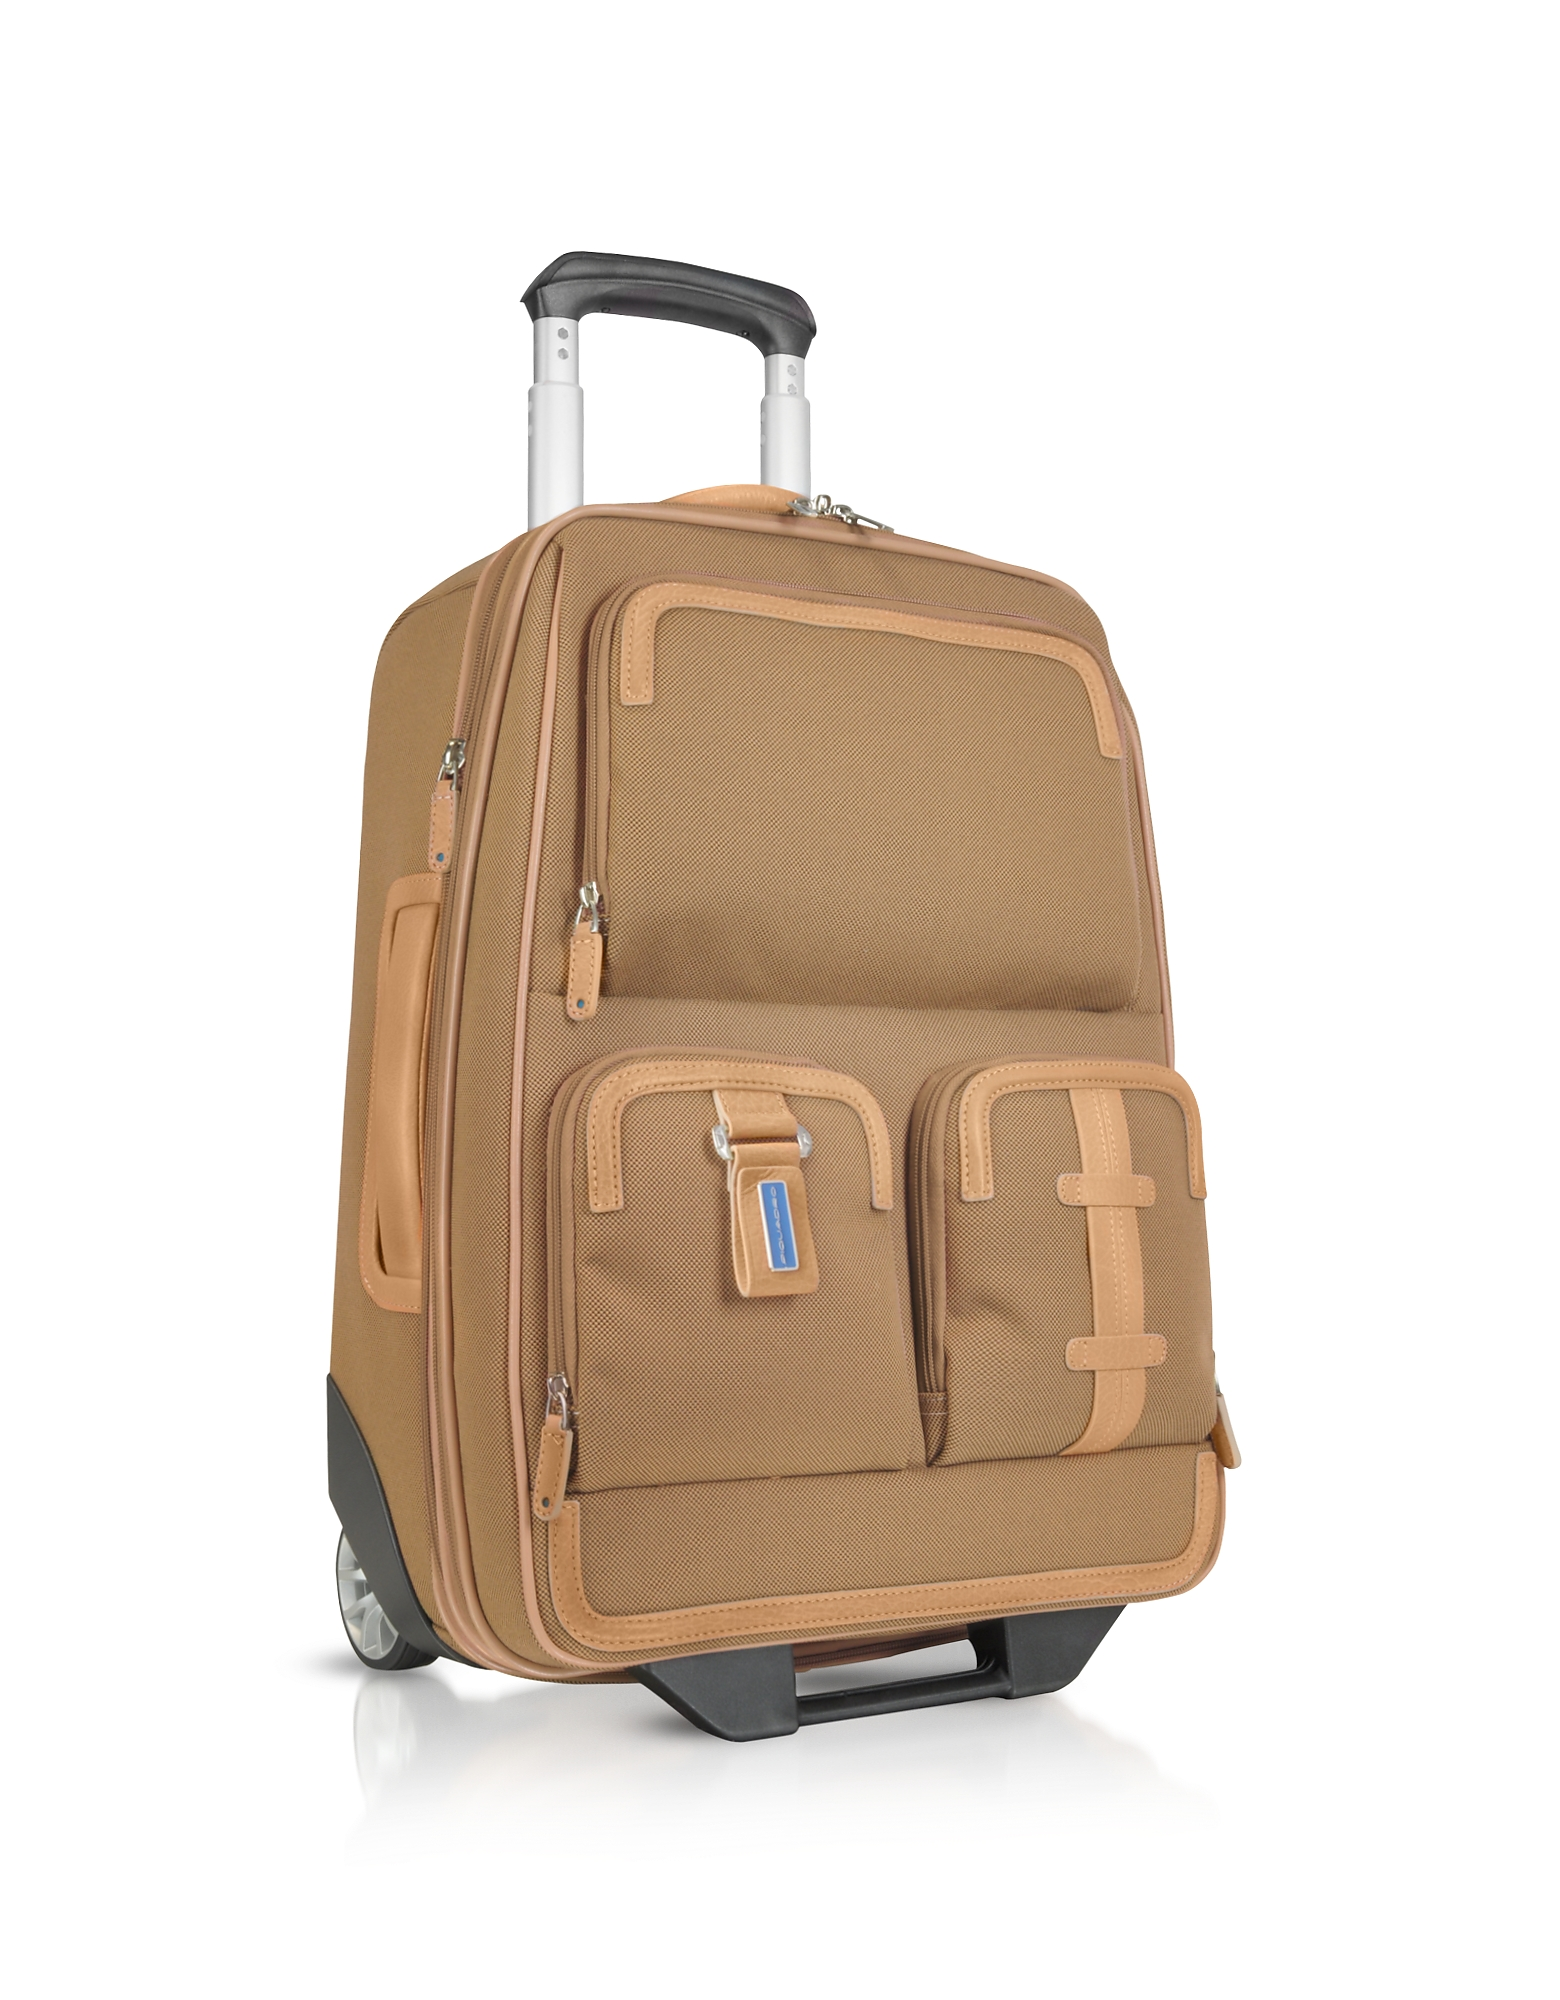 Image of Piquadro Designer Travel Bags, Land - Carry-on Trolley